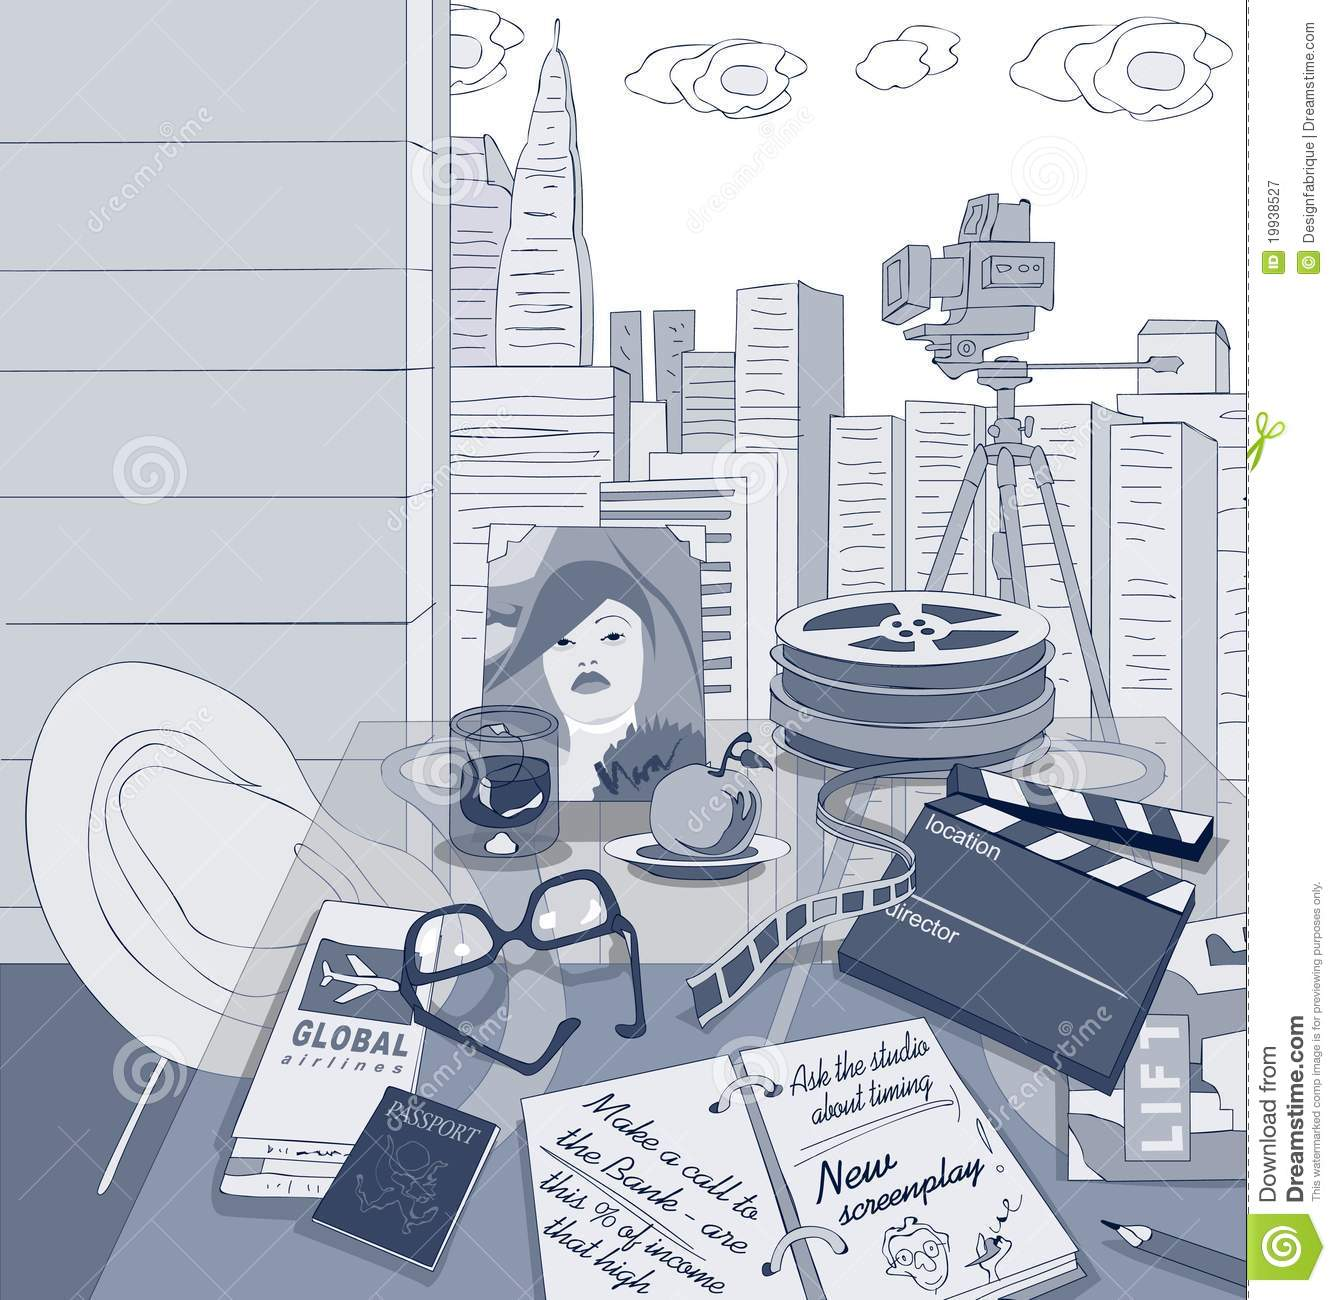 a description of moviemaking process Filmmaking is the process of making a film the nature of the film determines the size and type of crew required during filmmaking many hollywood adventure films employ a cast and crew of thousands and have complicated computer generated imagery (cgi), while a low-budget, independent film may be .